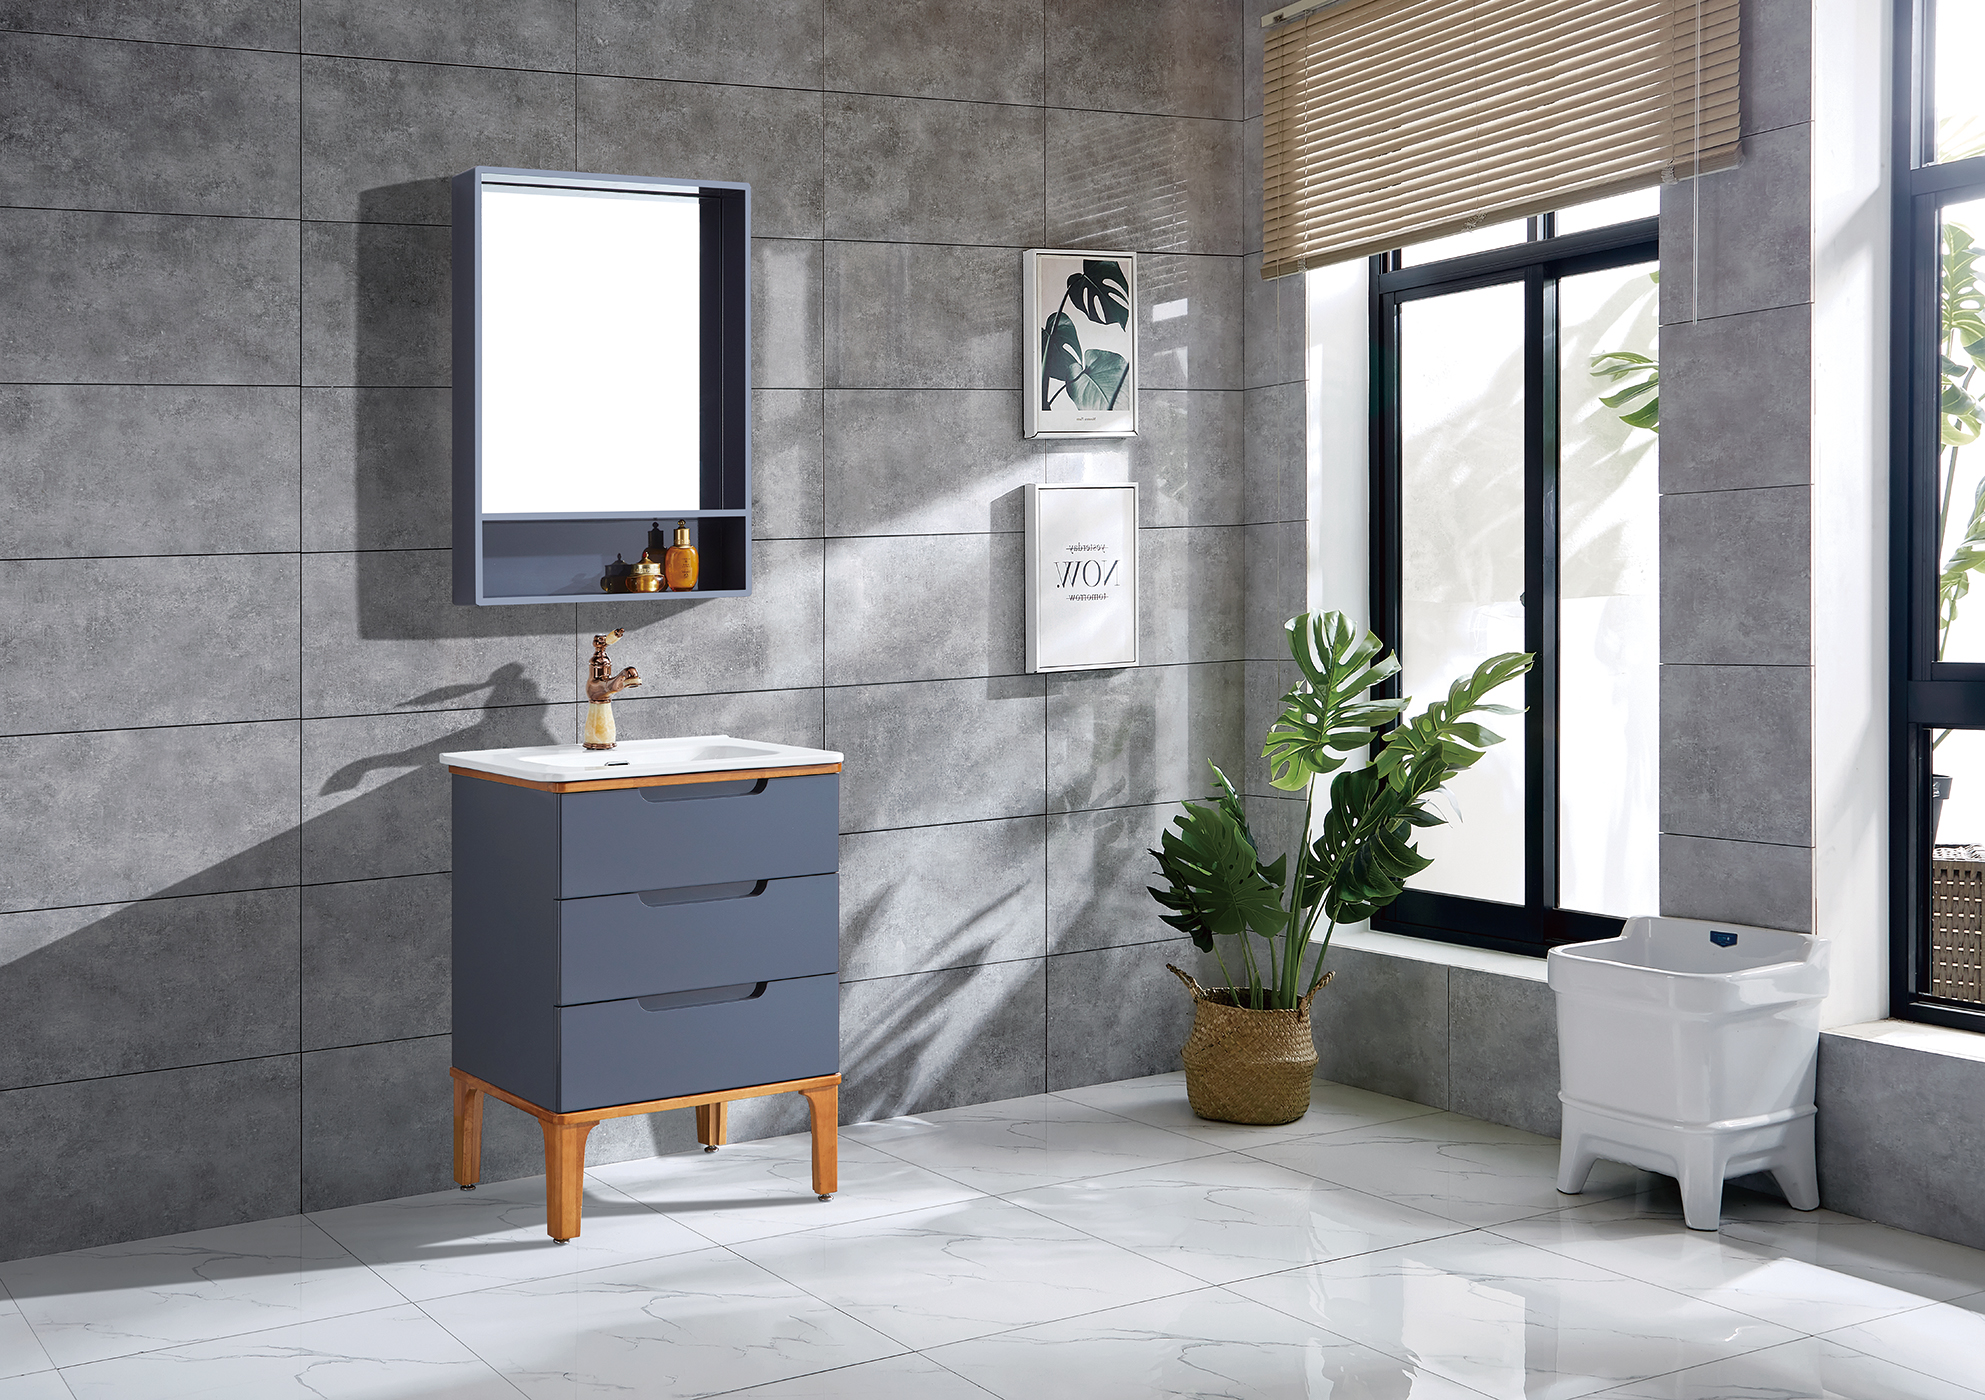 Japanese Blum Mirror Medicine Sink With Wood Bathroom Cabinet Buy Bathroom Sink With Cabinet Medicine Cabinet Bathroom Mirror Japanese Bathroom Cabinet Product On Alibaba Com